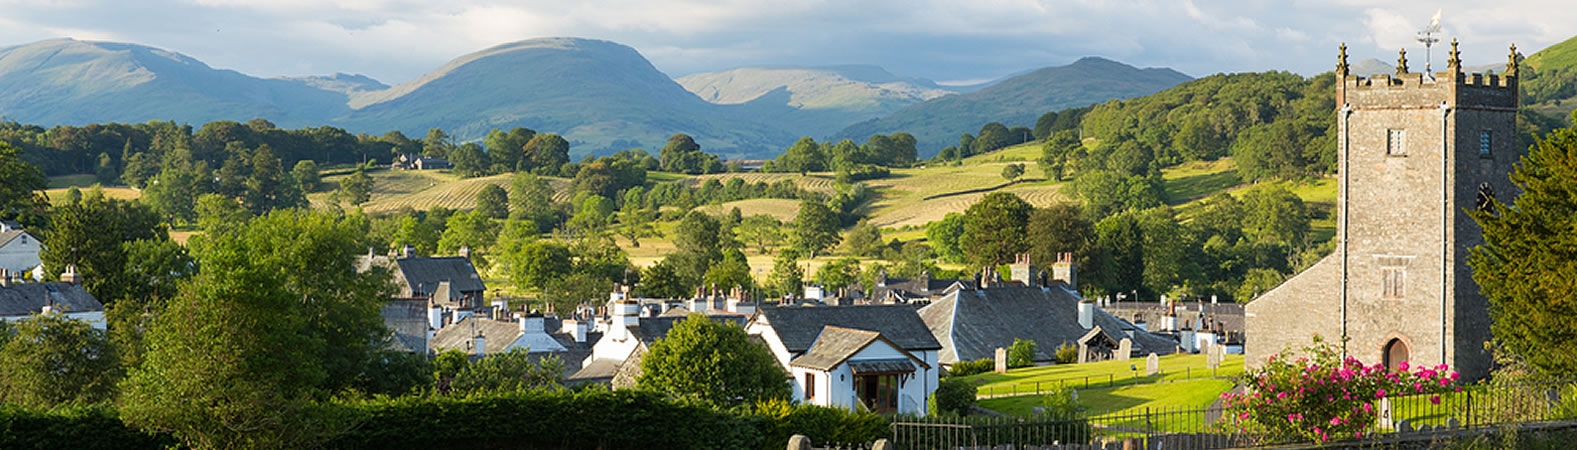 lake-district-hawkshead